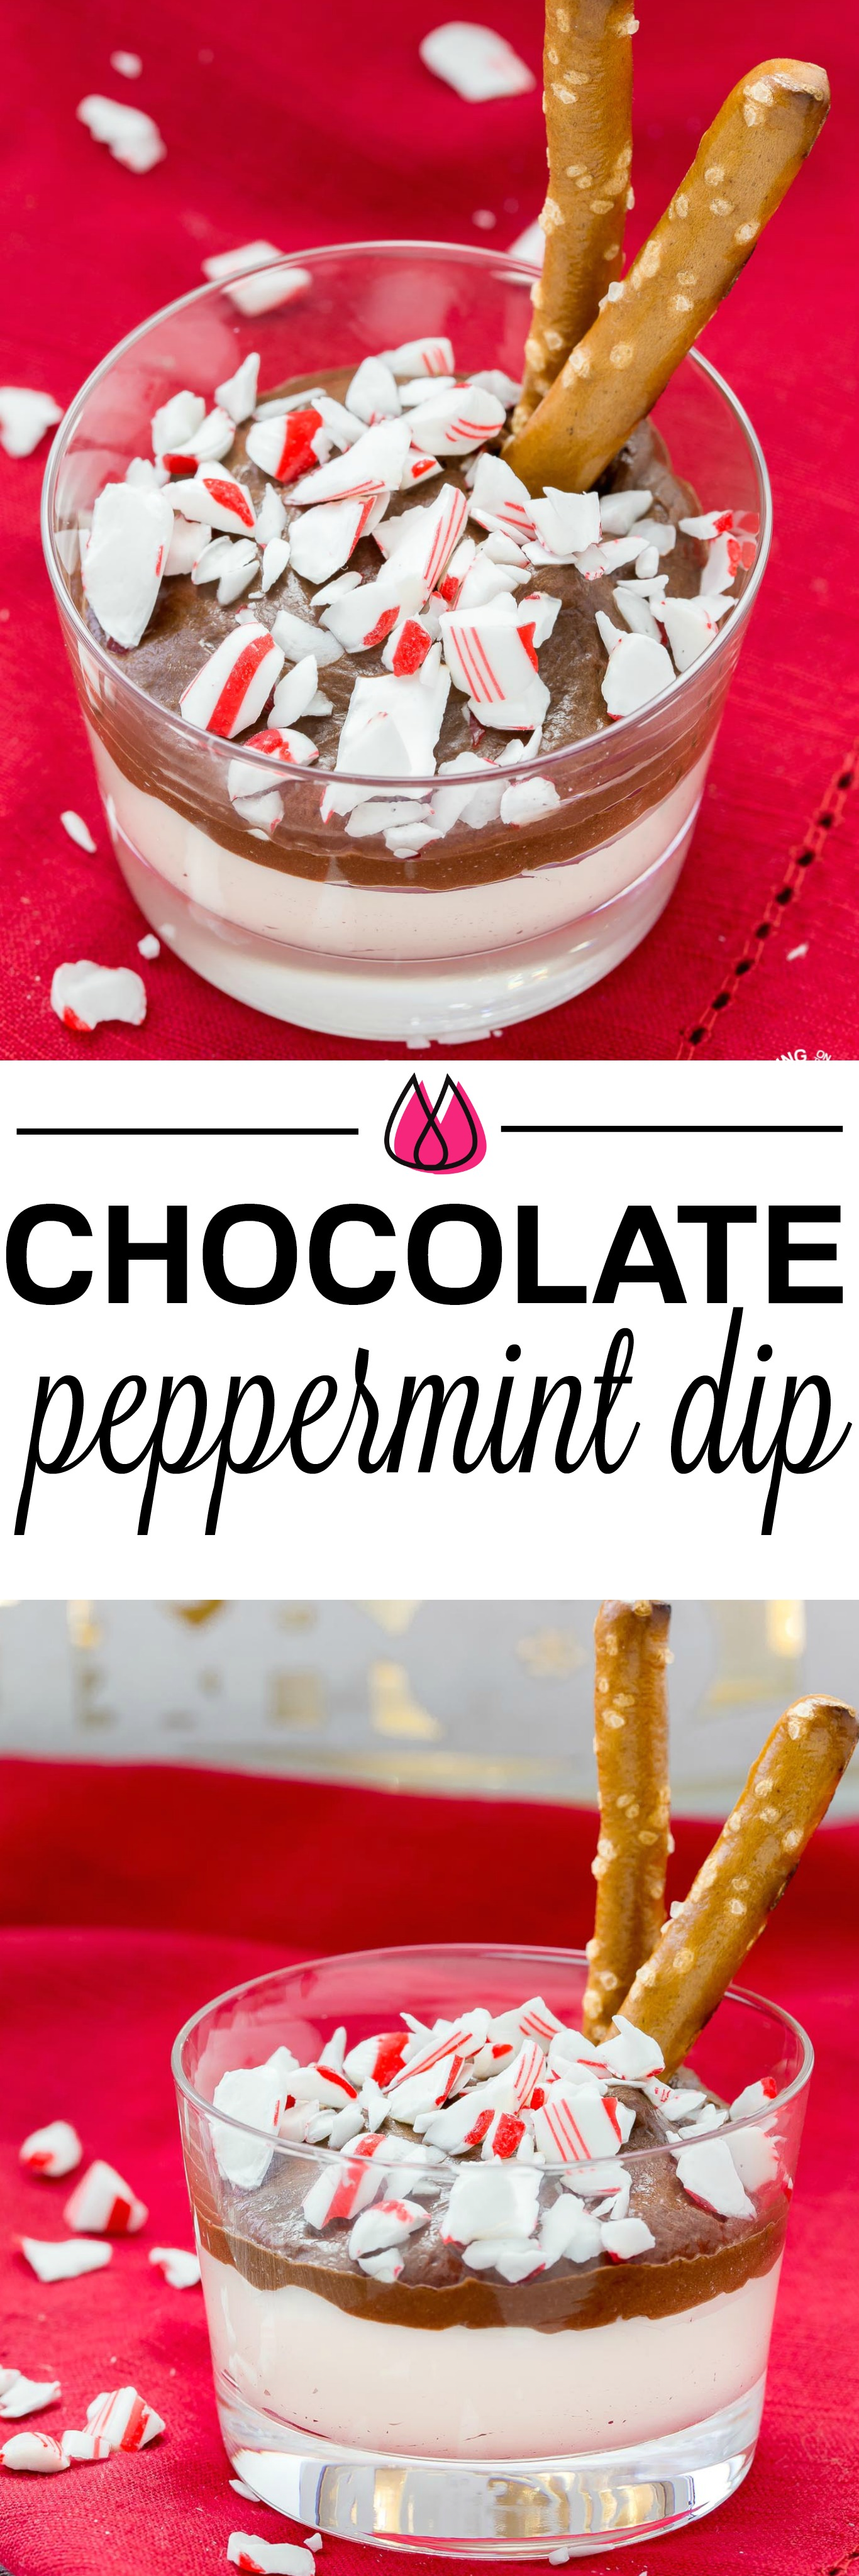 This holiday Chocolate Peppermint Dip is a great snack recipe to have on hand that everyone will love.  It has two kinds of chocolate, mint and salty pretzels for dippers that make a great combo to satisfy that sweet tooth! #peppermint #chocolate #dip